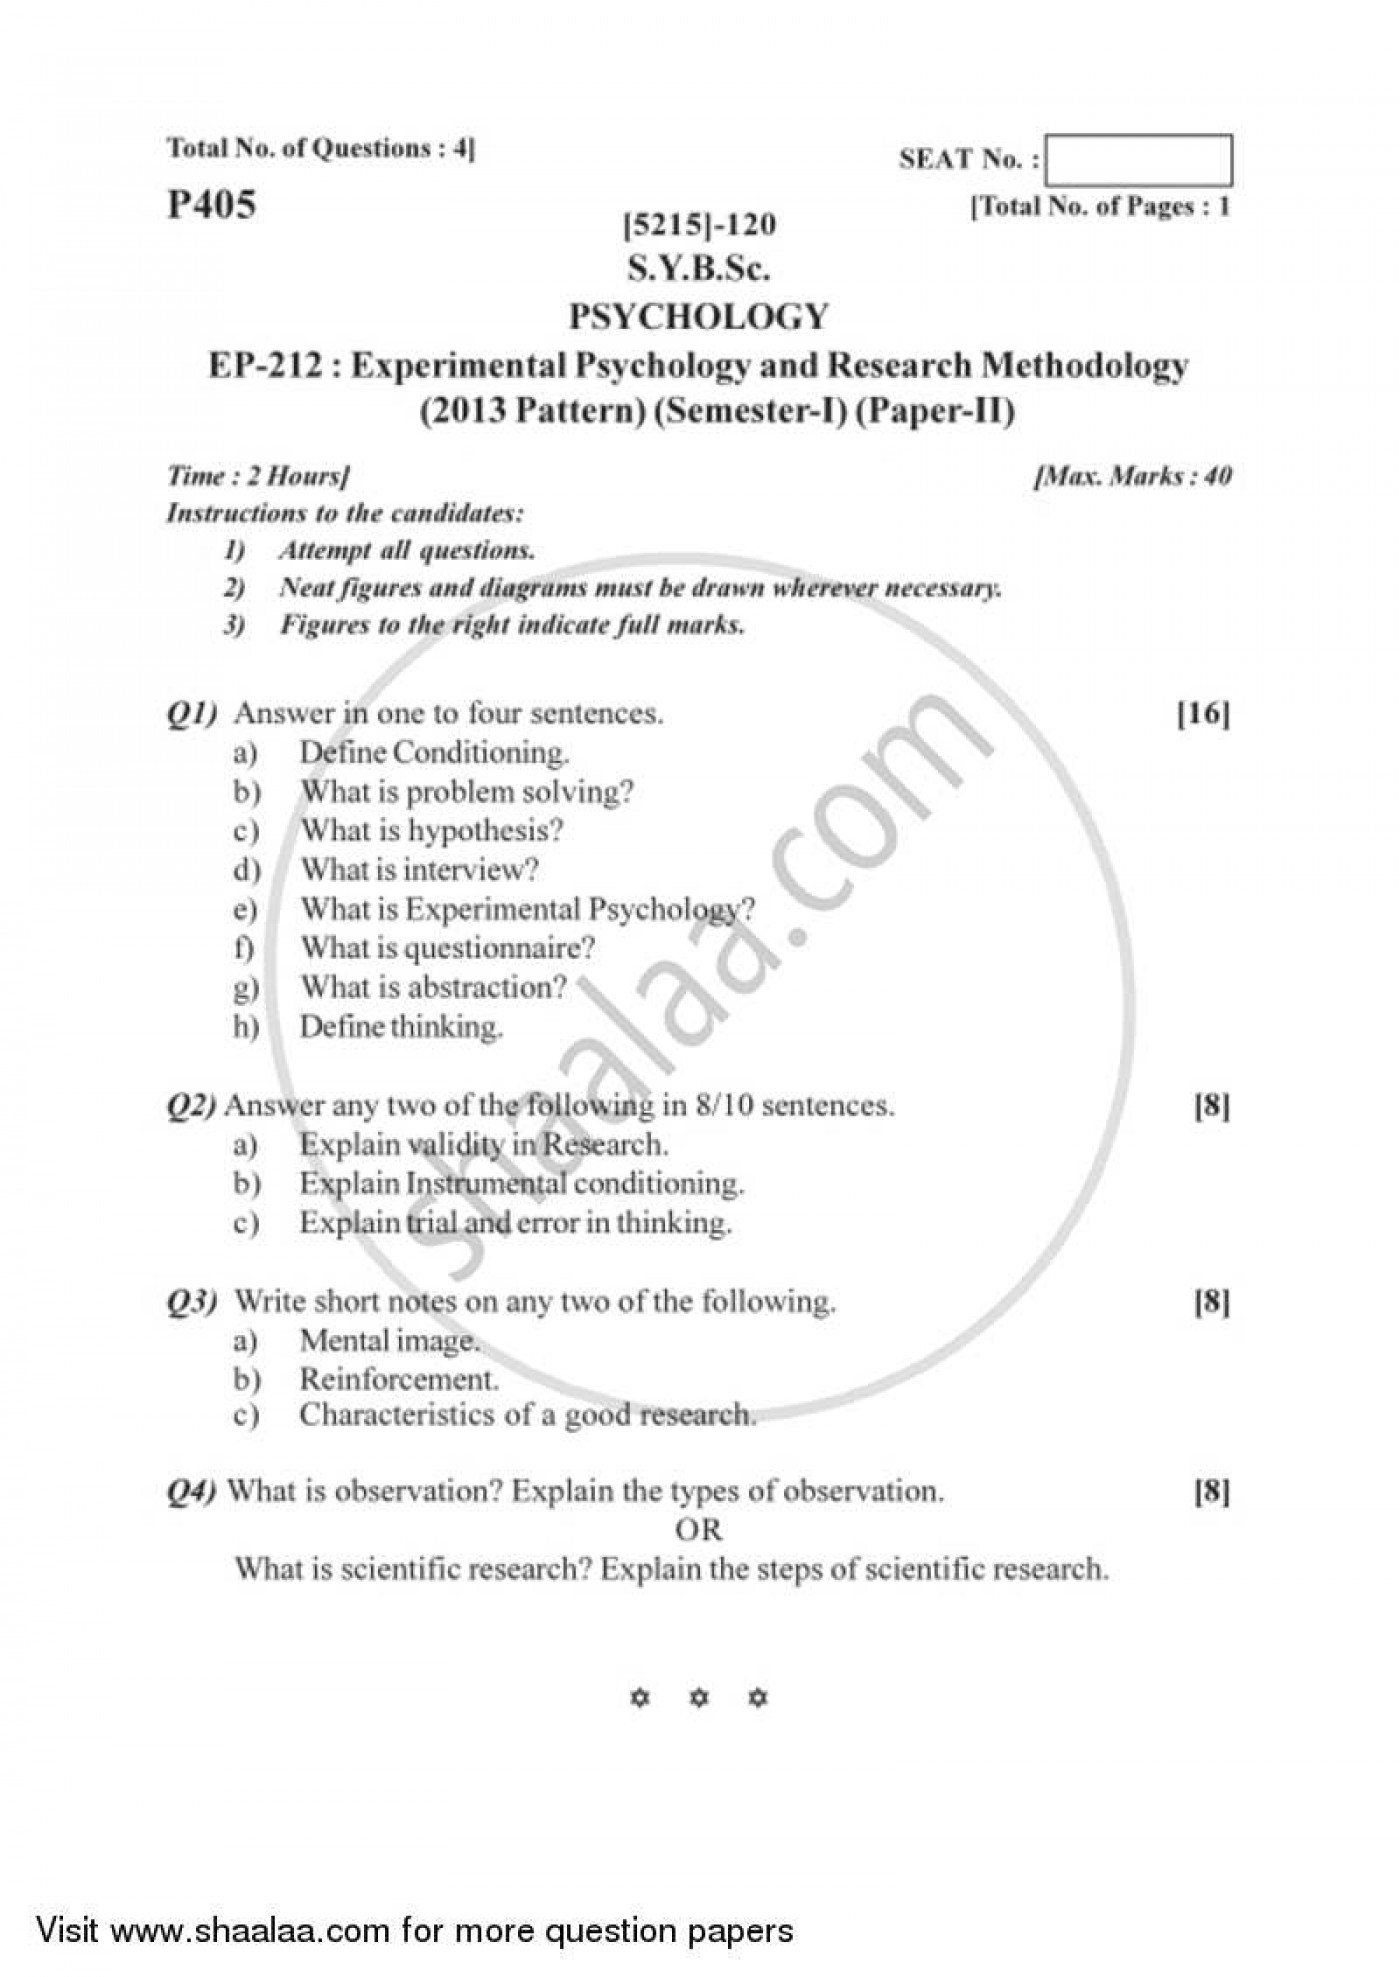 001 University Of Pune Bachelor Bsc Experimental Psychology Research Methodology Semester Sybsc Pattern 20a139127c9aa4d488dbfc2180e67df98s Unforgettable Papers 2017 1400